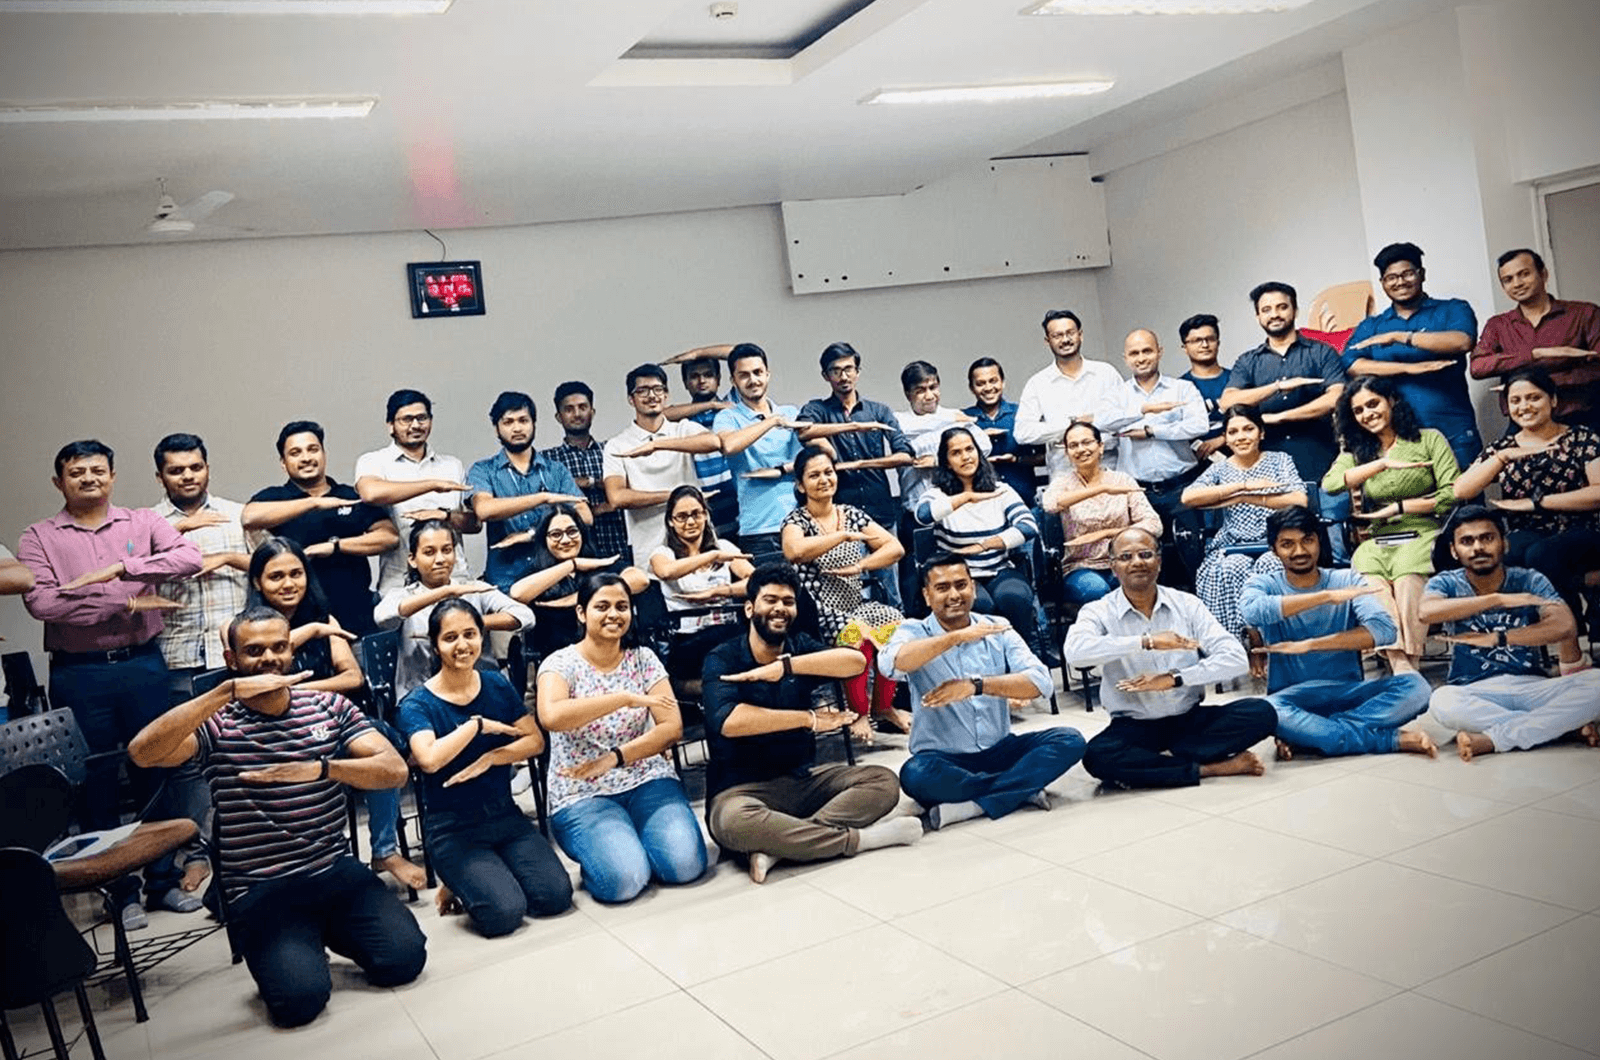 Group of Toastmasters in India posing with arms making equal signs